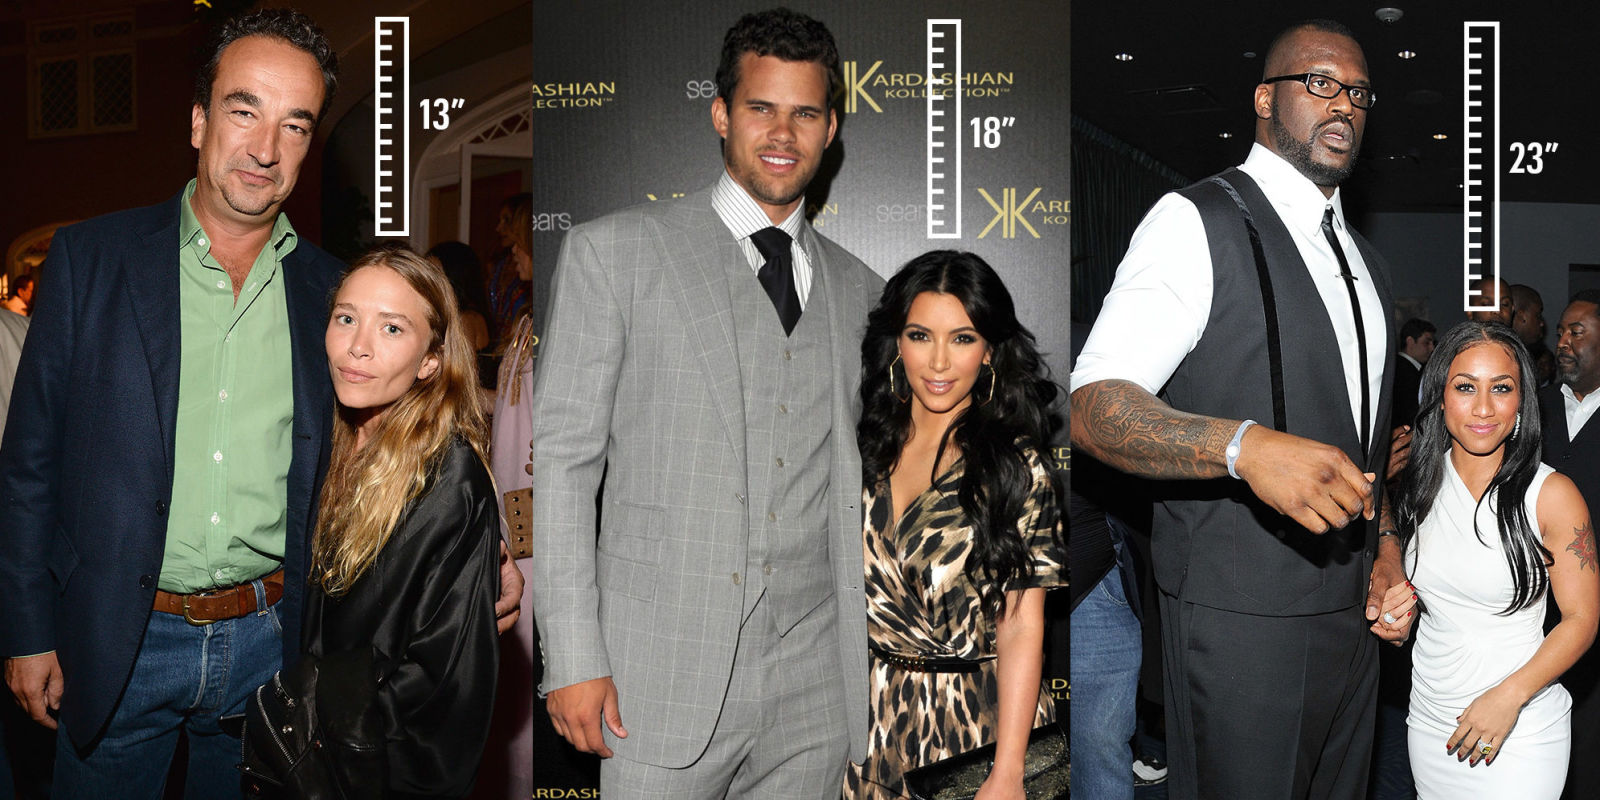 man and woman height difference in relationship